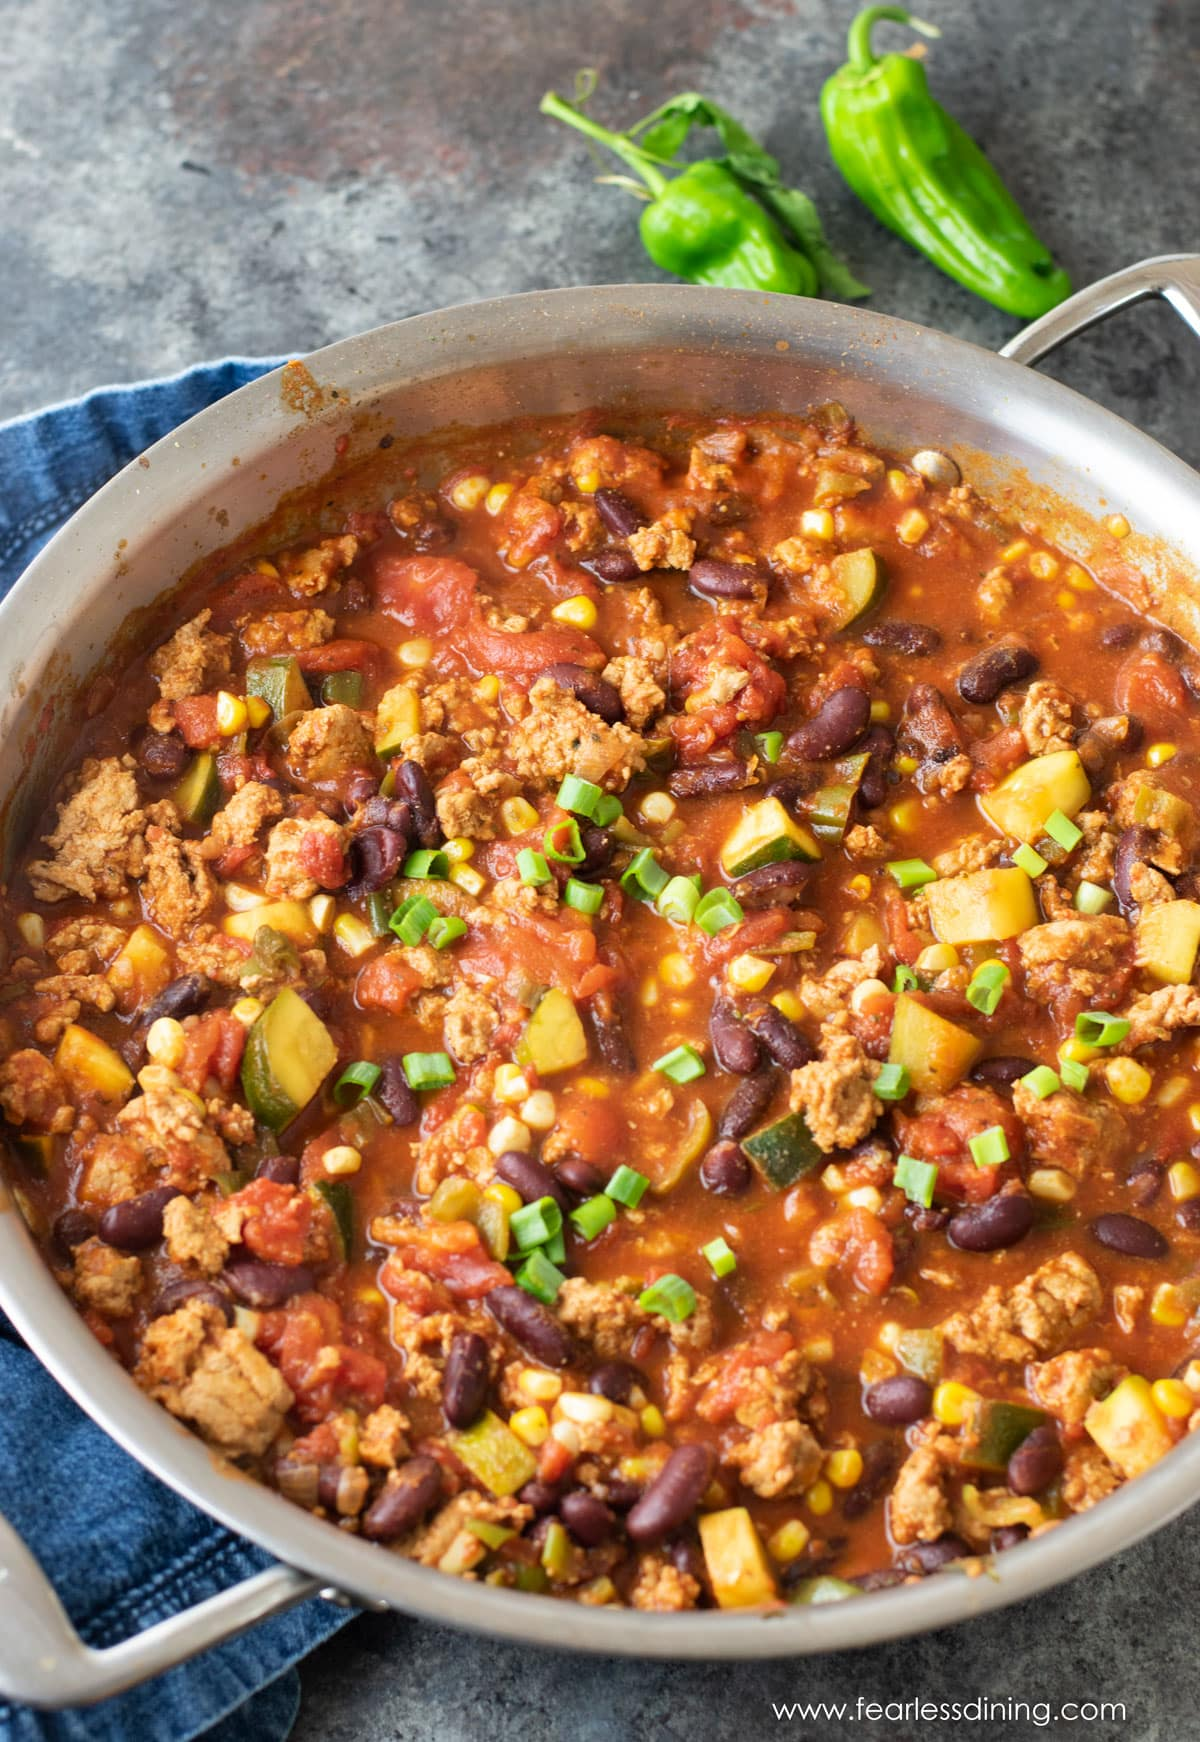 a large pan filled with chili